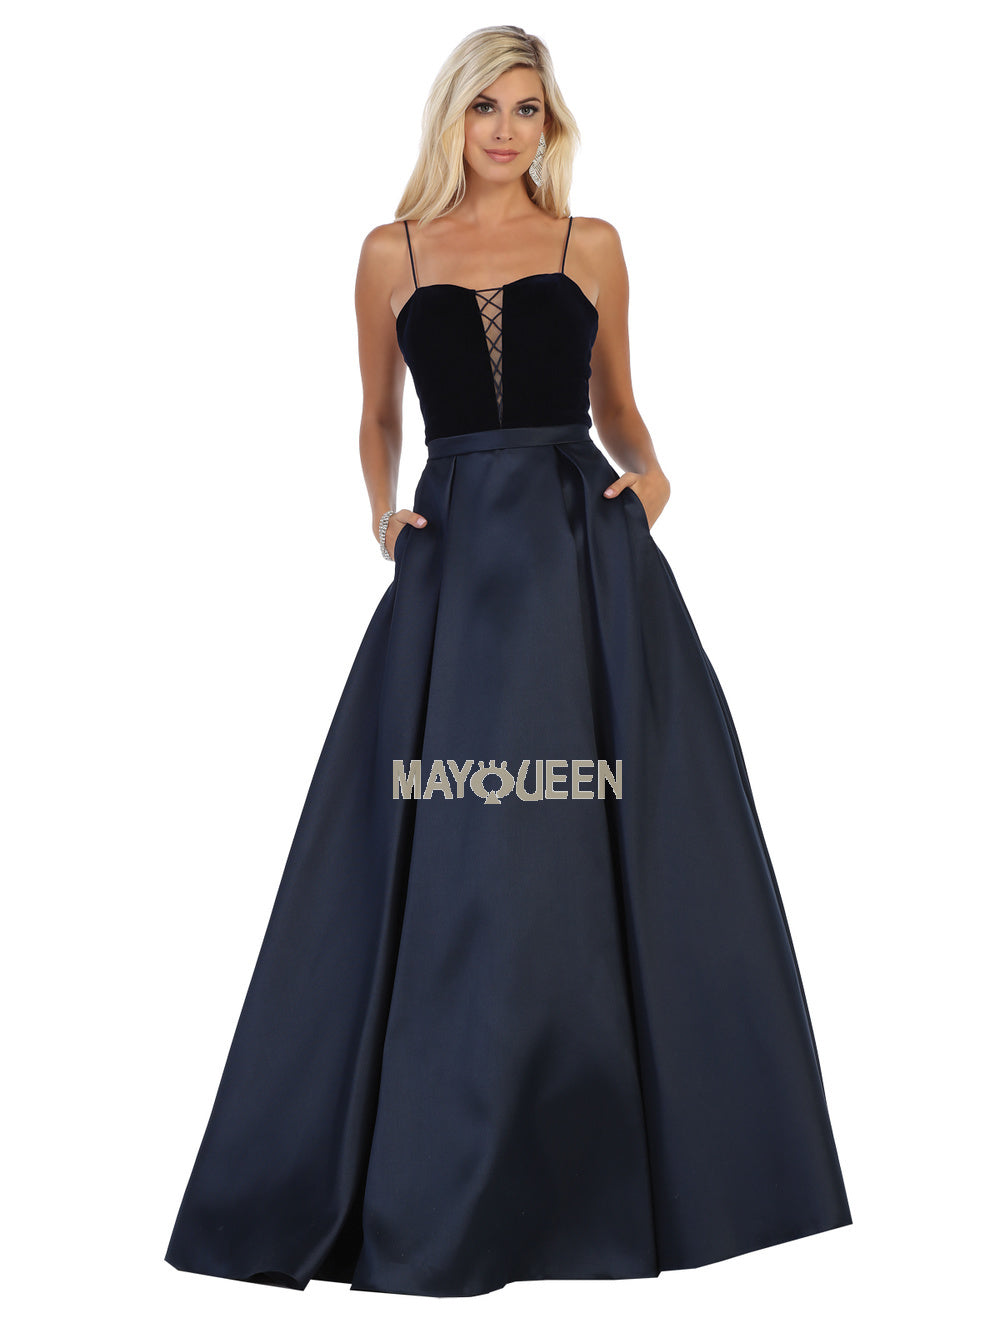 Mayqueen Size Chart E MQ 7742 - Spaghetti Strap Sweetheart Dress with lace up bodice - Diggz Prom